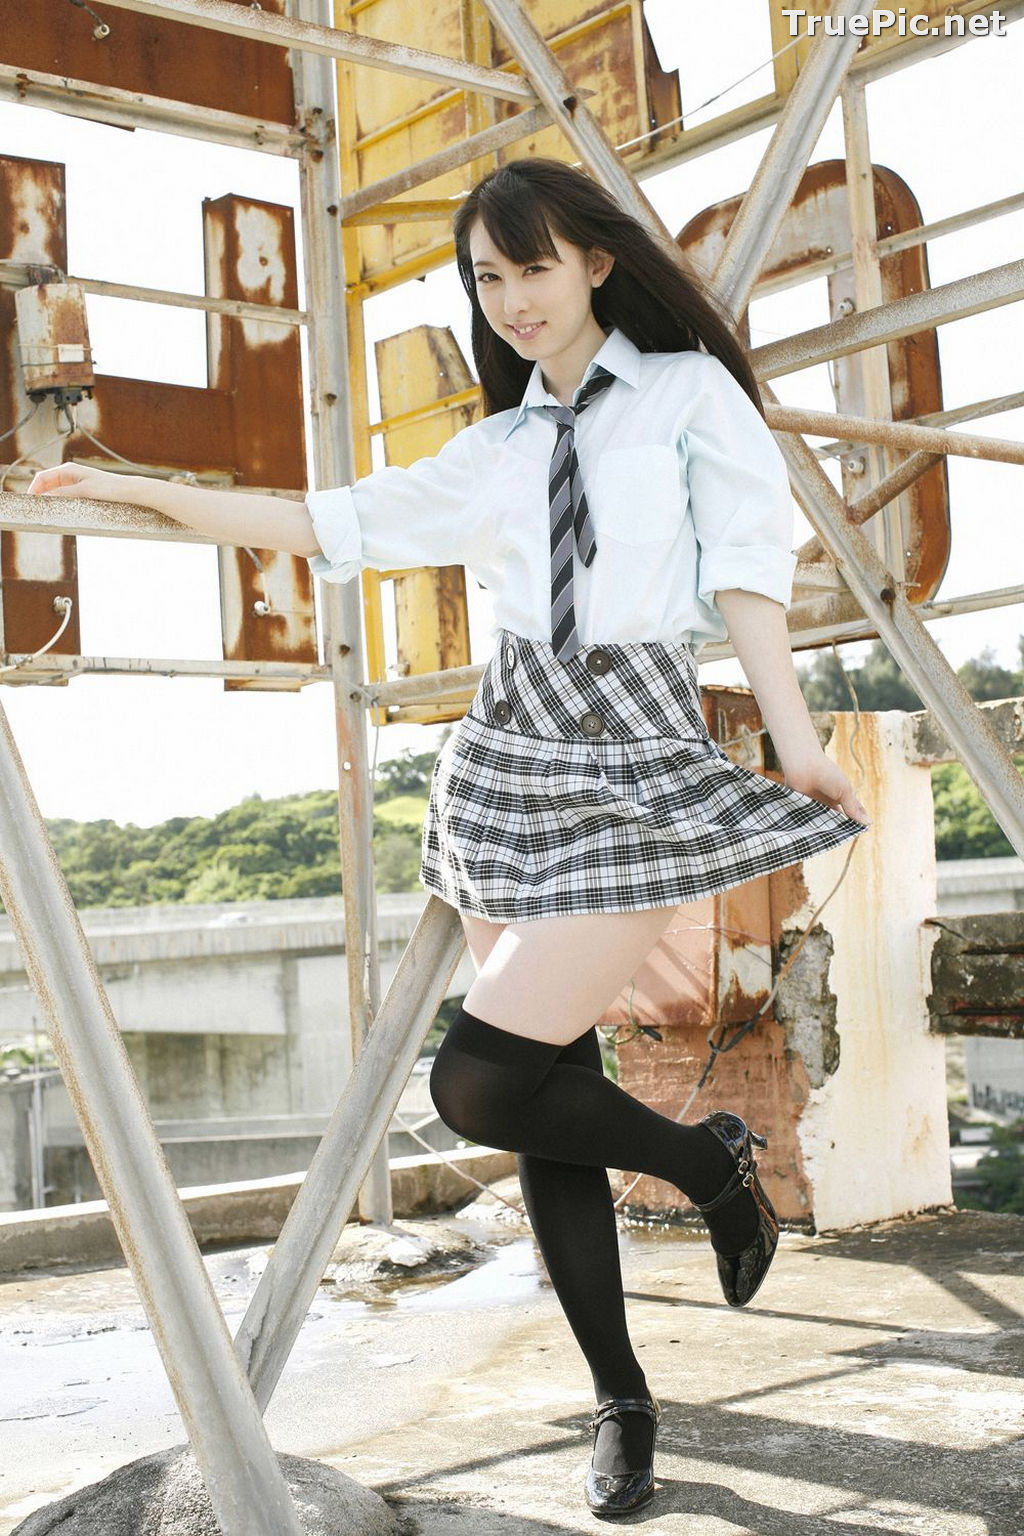 Image [YS Web] Vol.345 - Japanese Actress and Gravure Idol - Akiyama Rina - TruePic.net - Picture-1